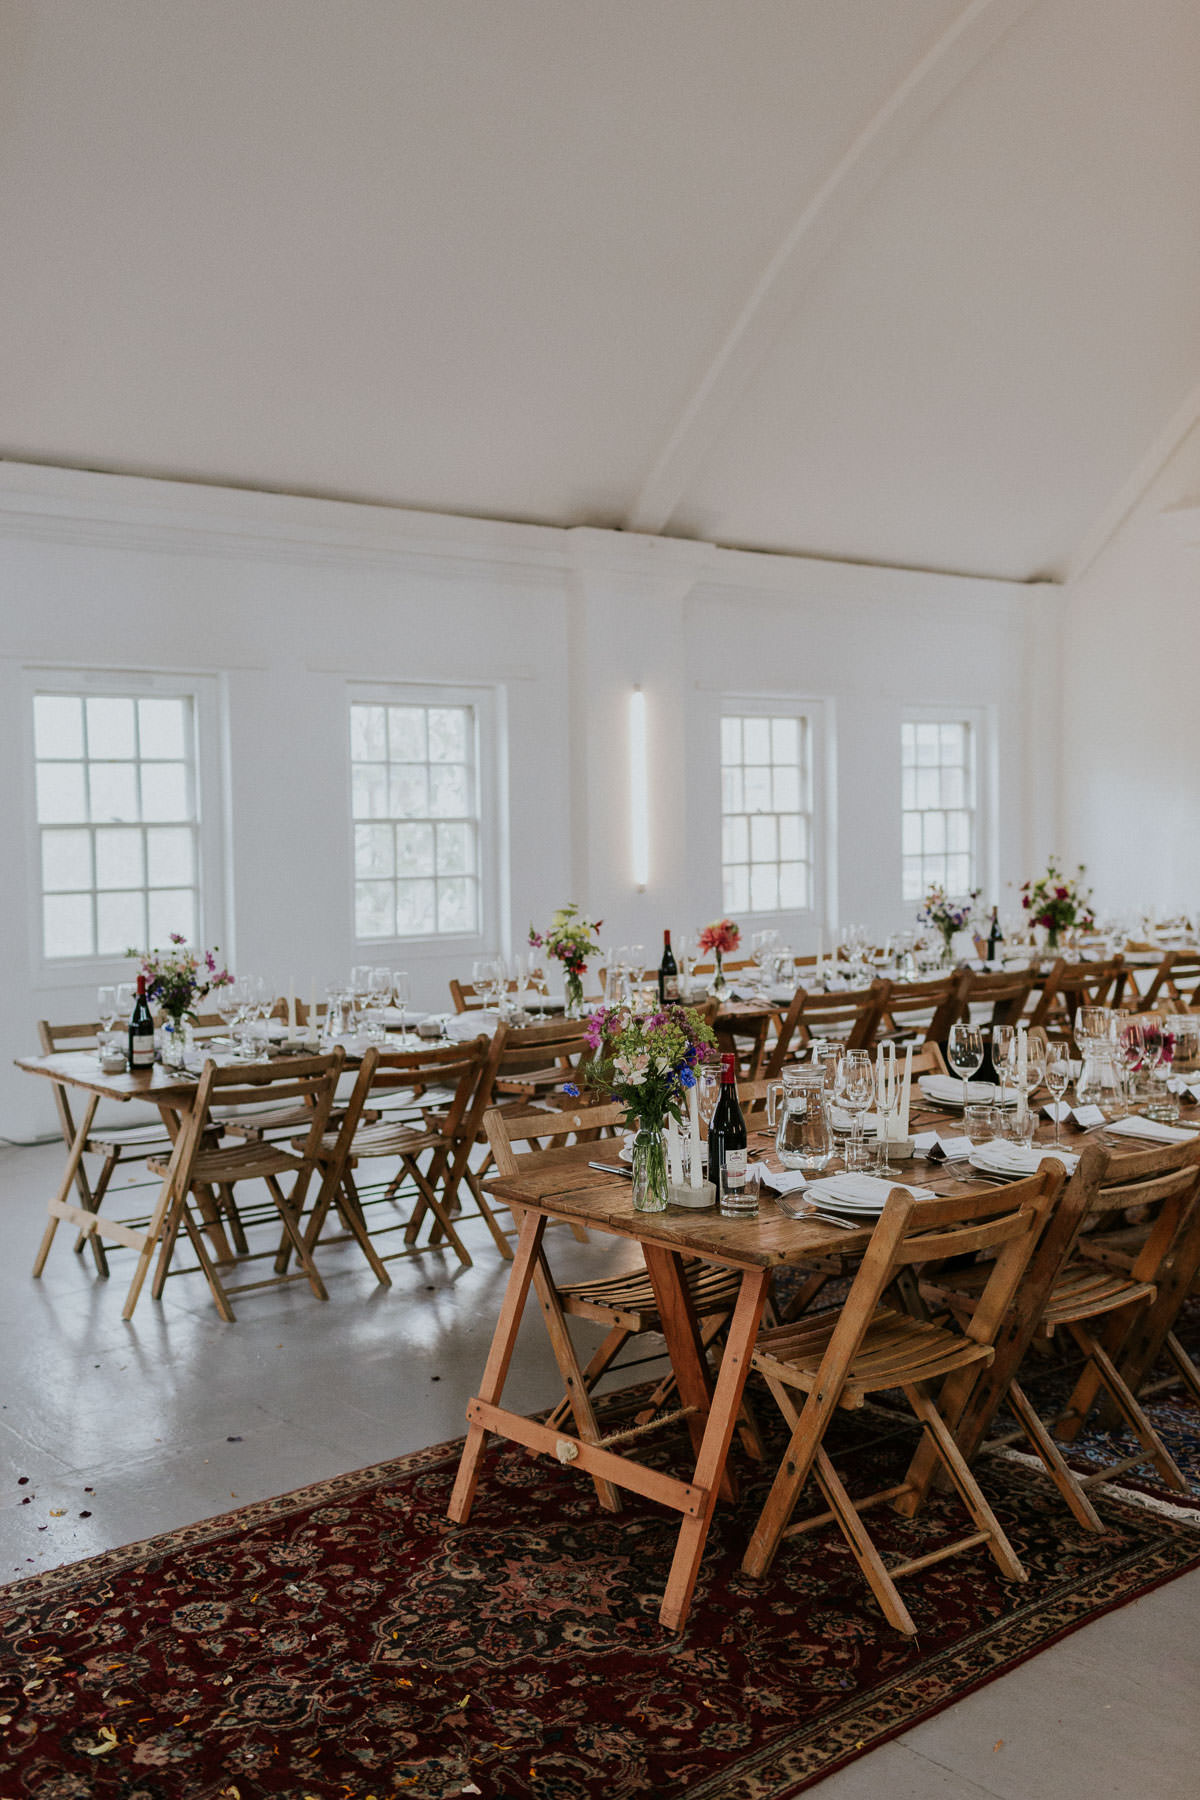 London Wedding at Core Clapton: rustic wooden table and chairs